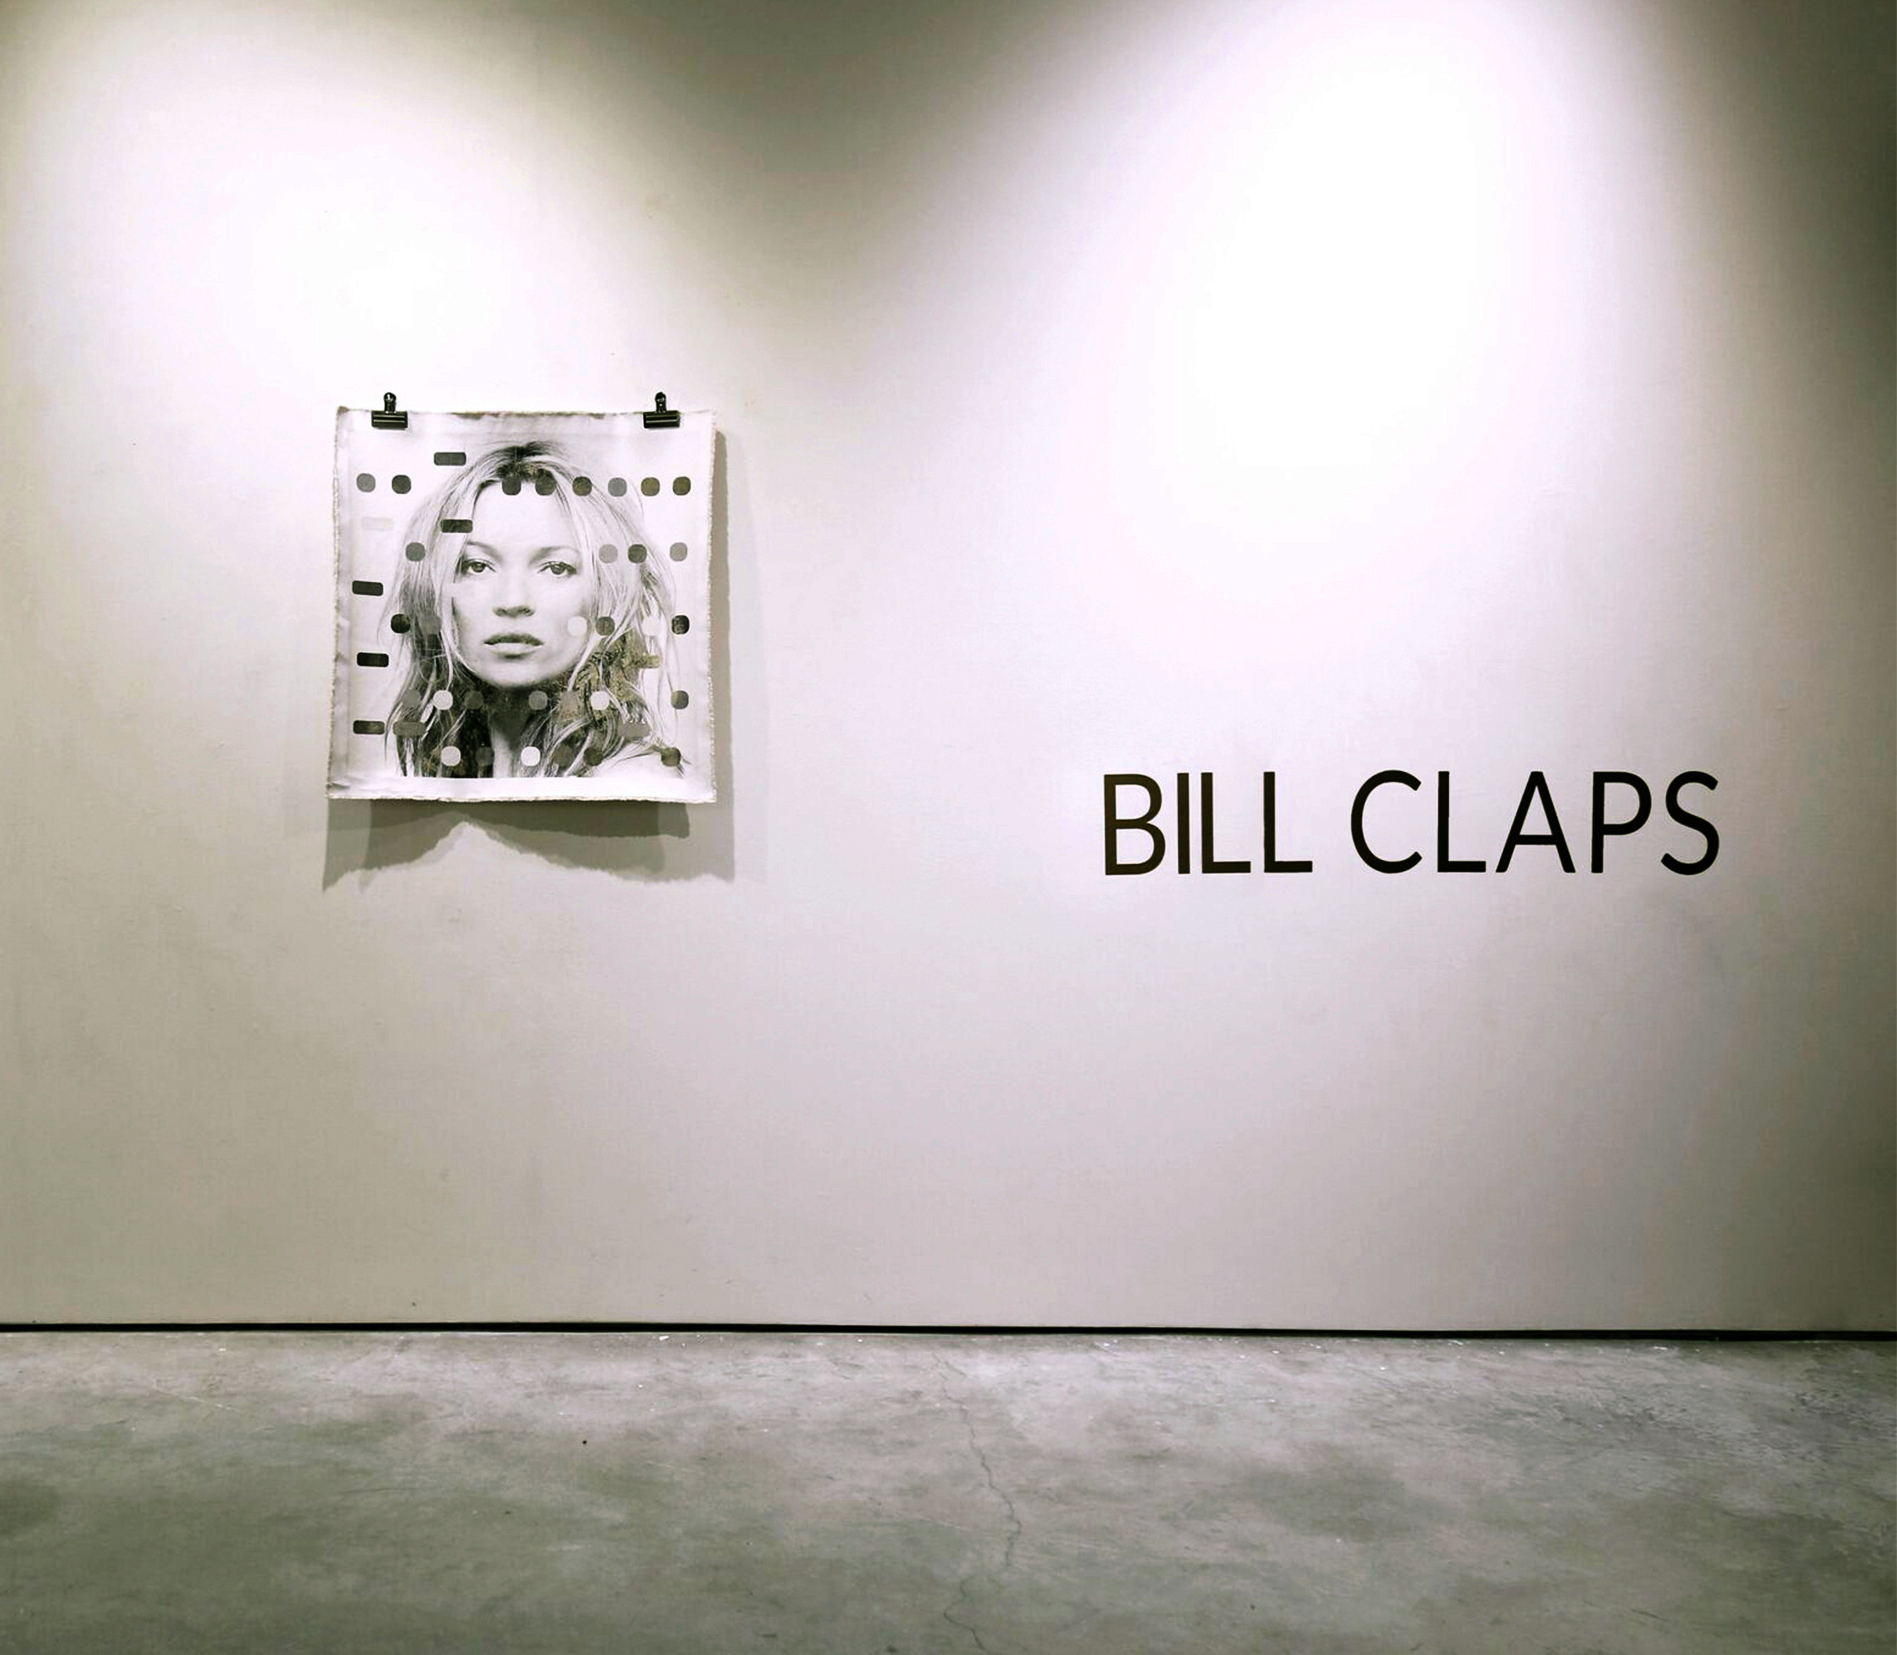 bill-claps-ex2 Croppped.jpg